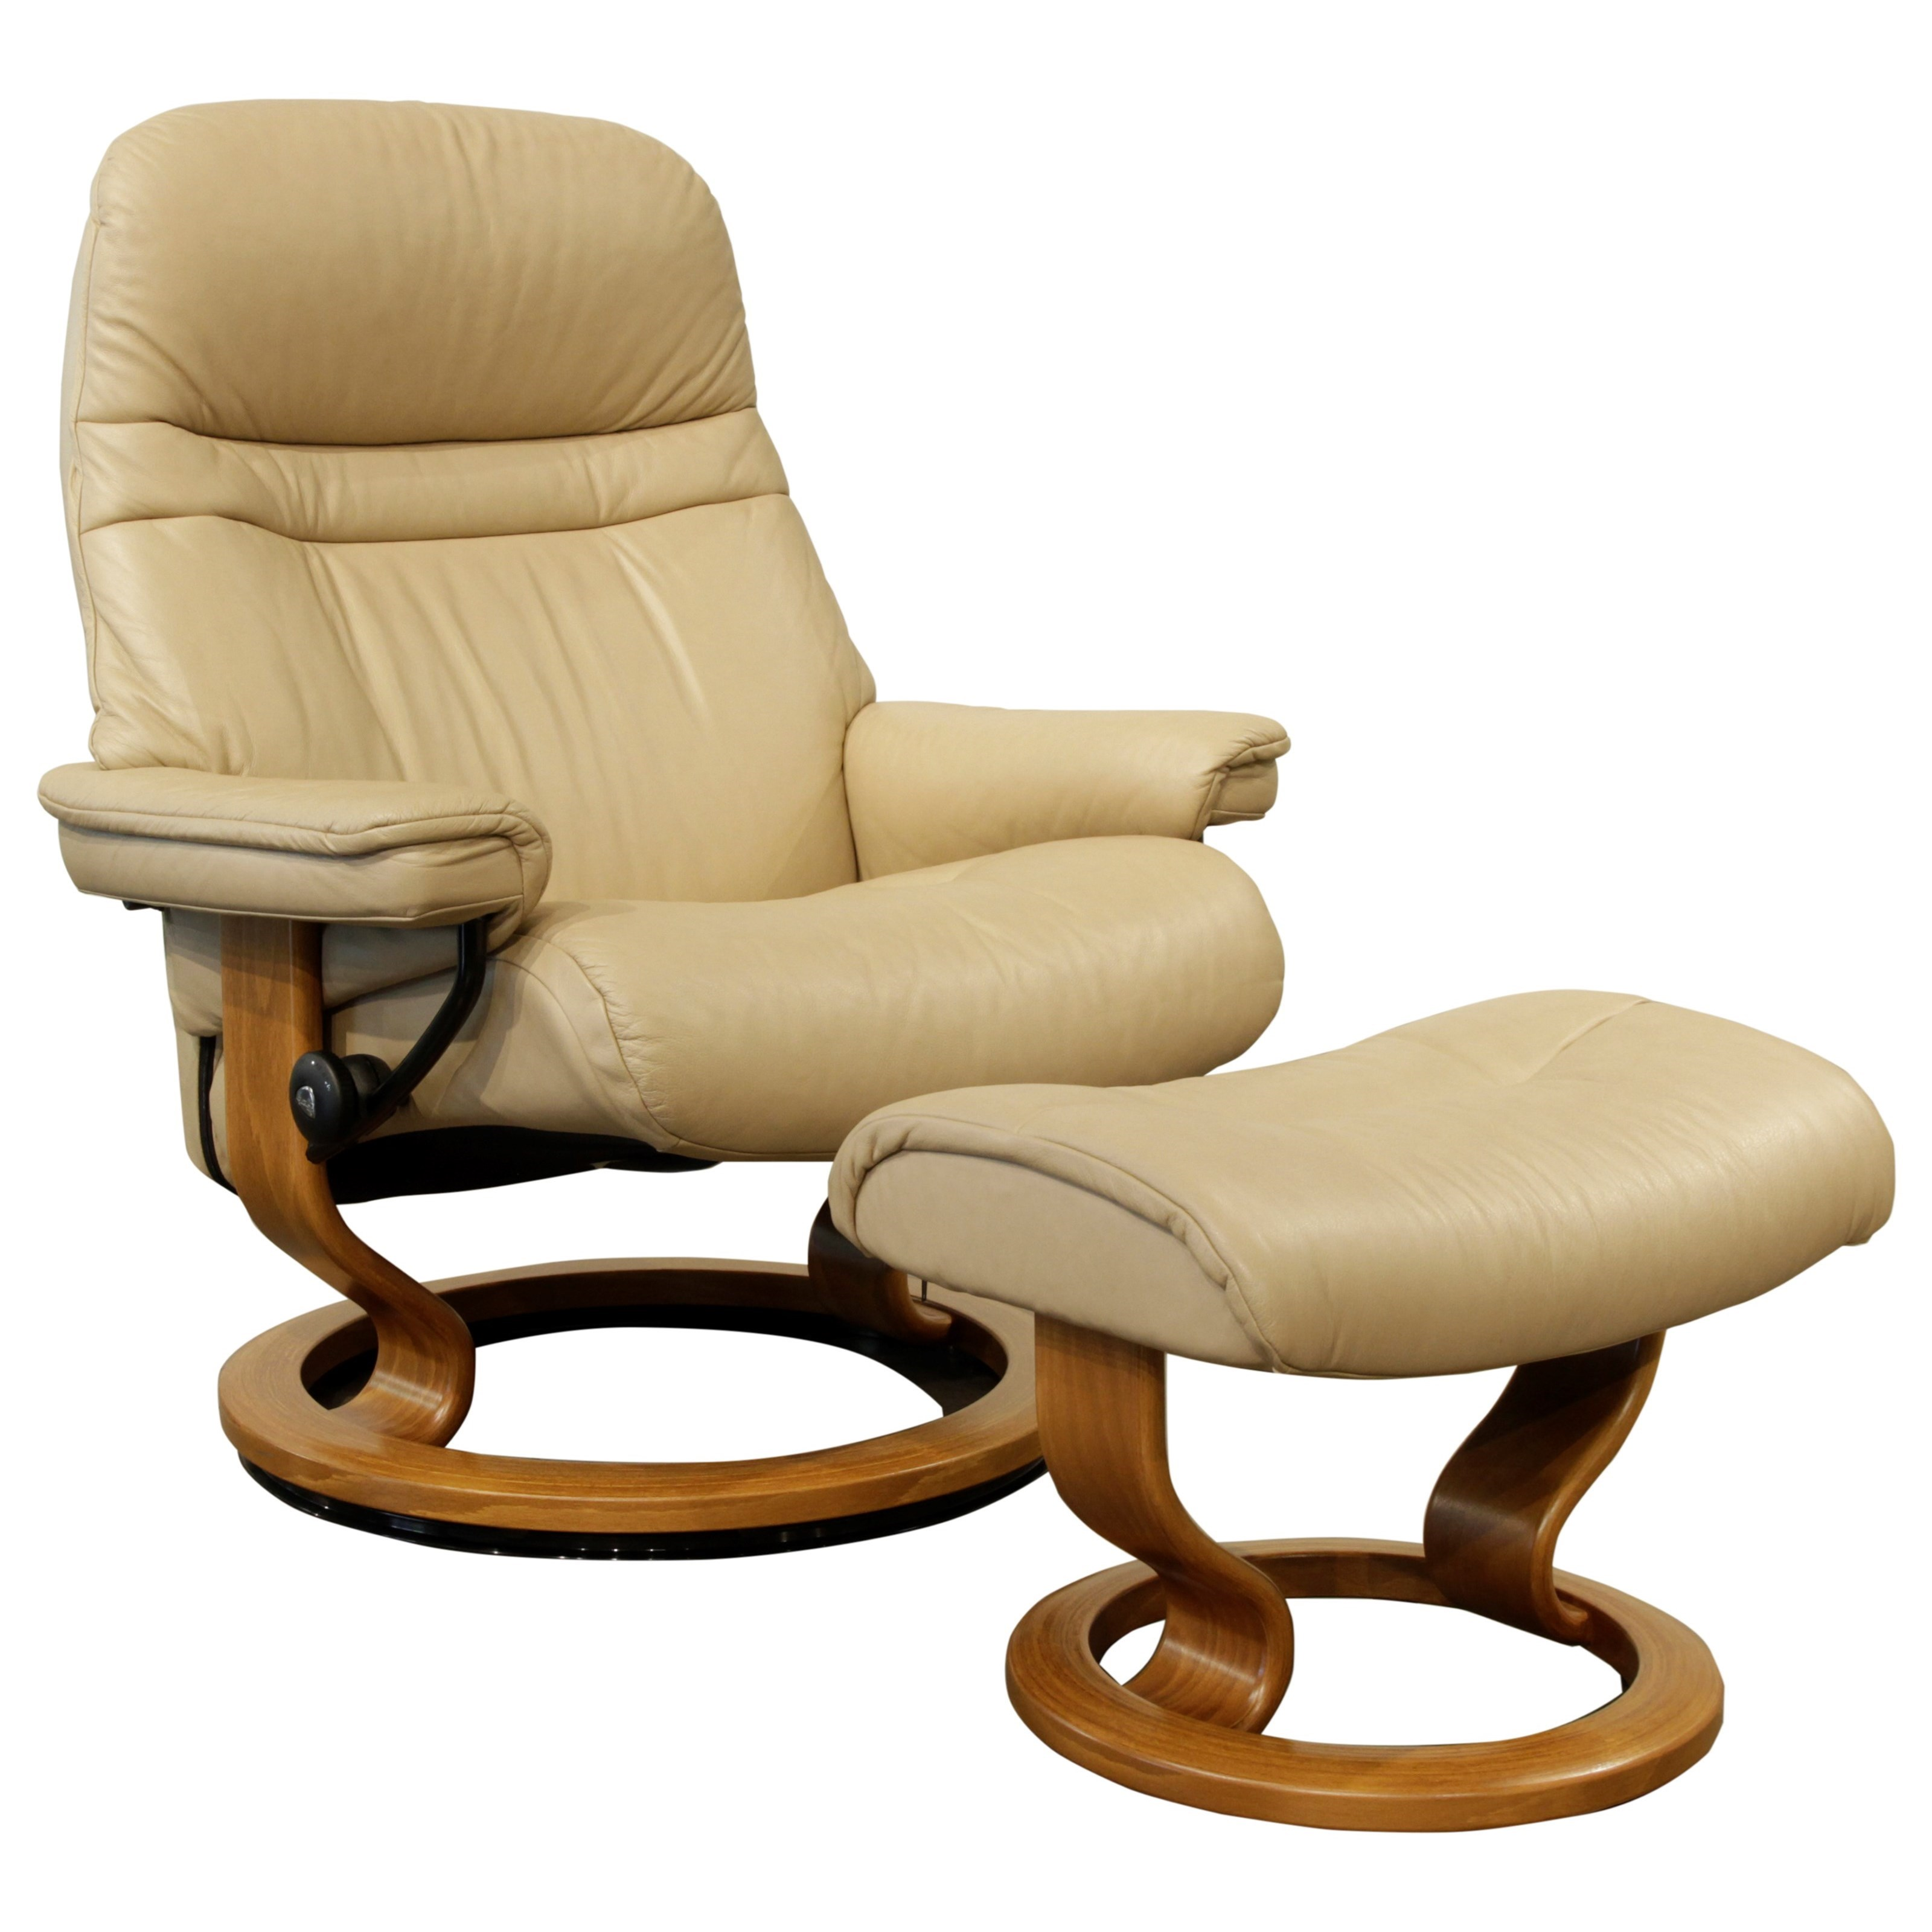 Large Reclining Chair & Ottoman